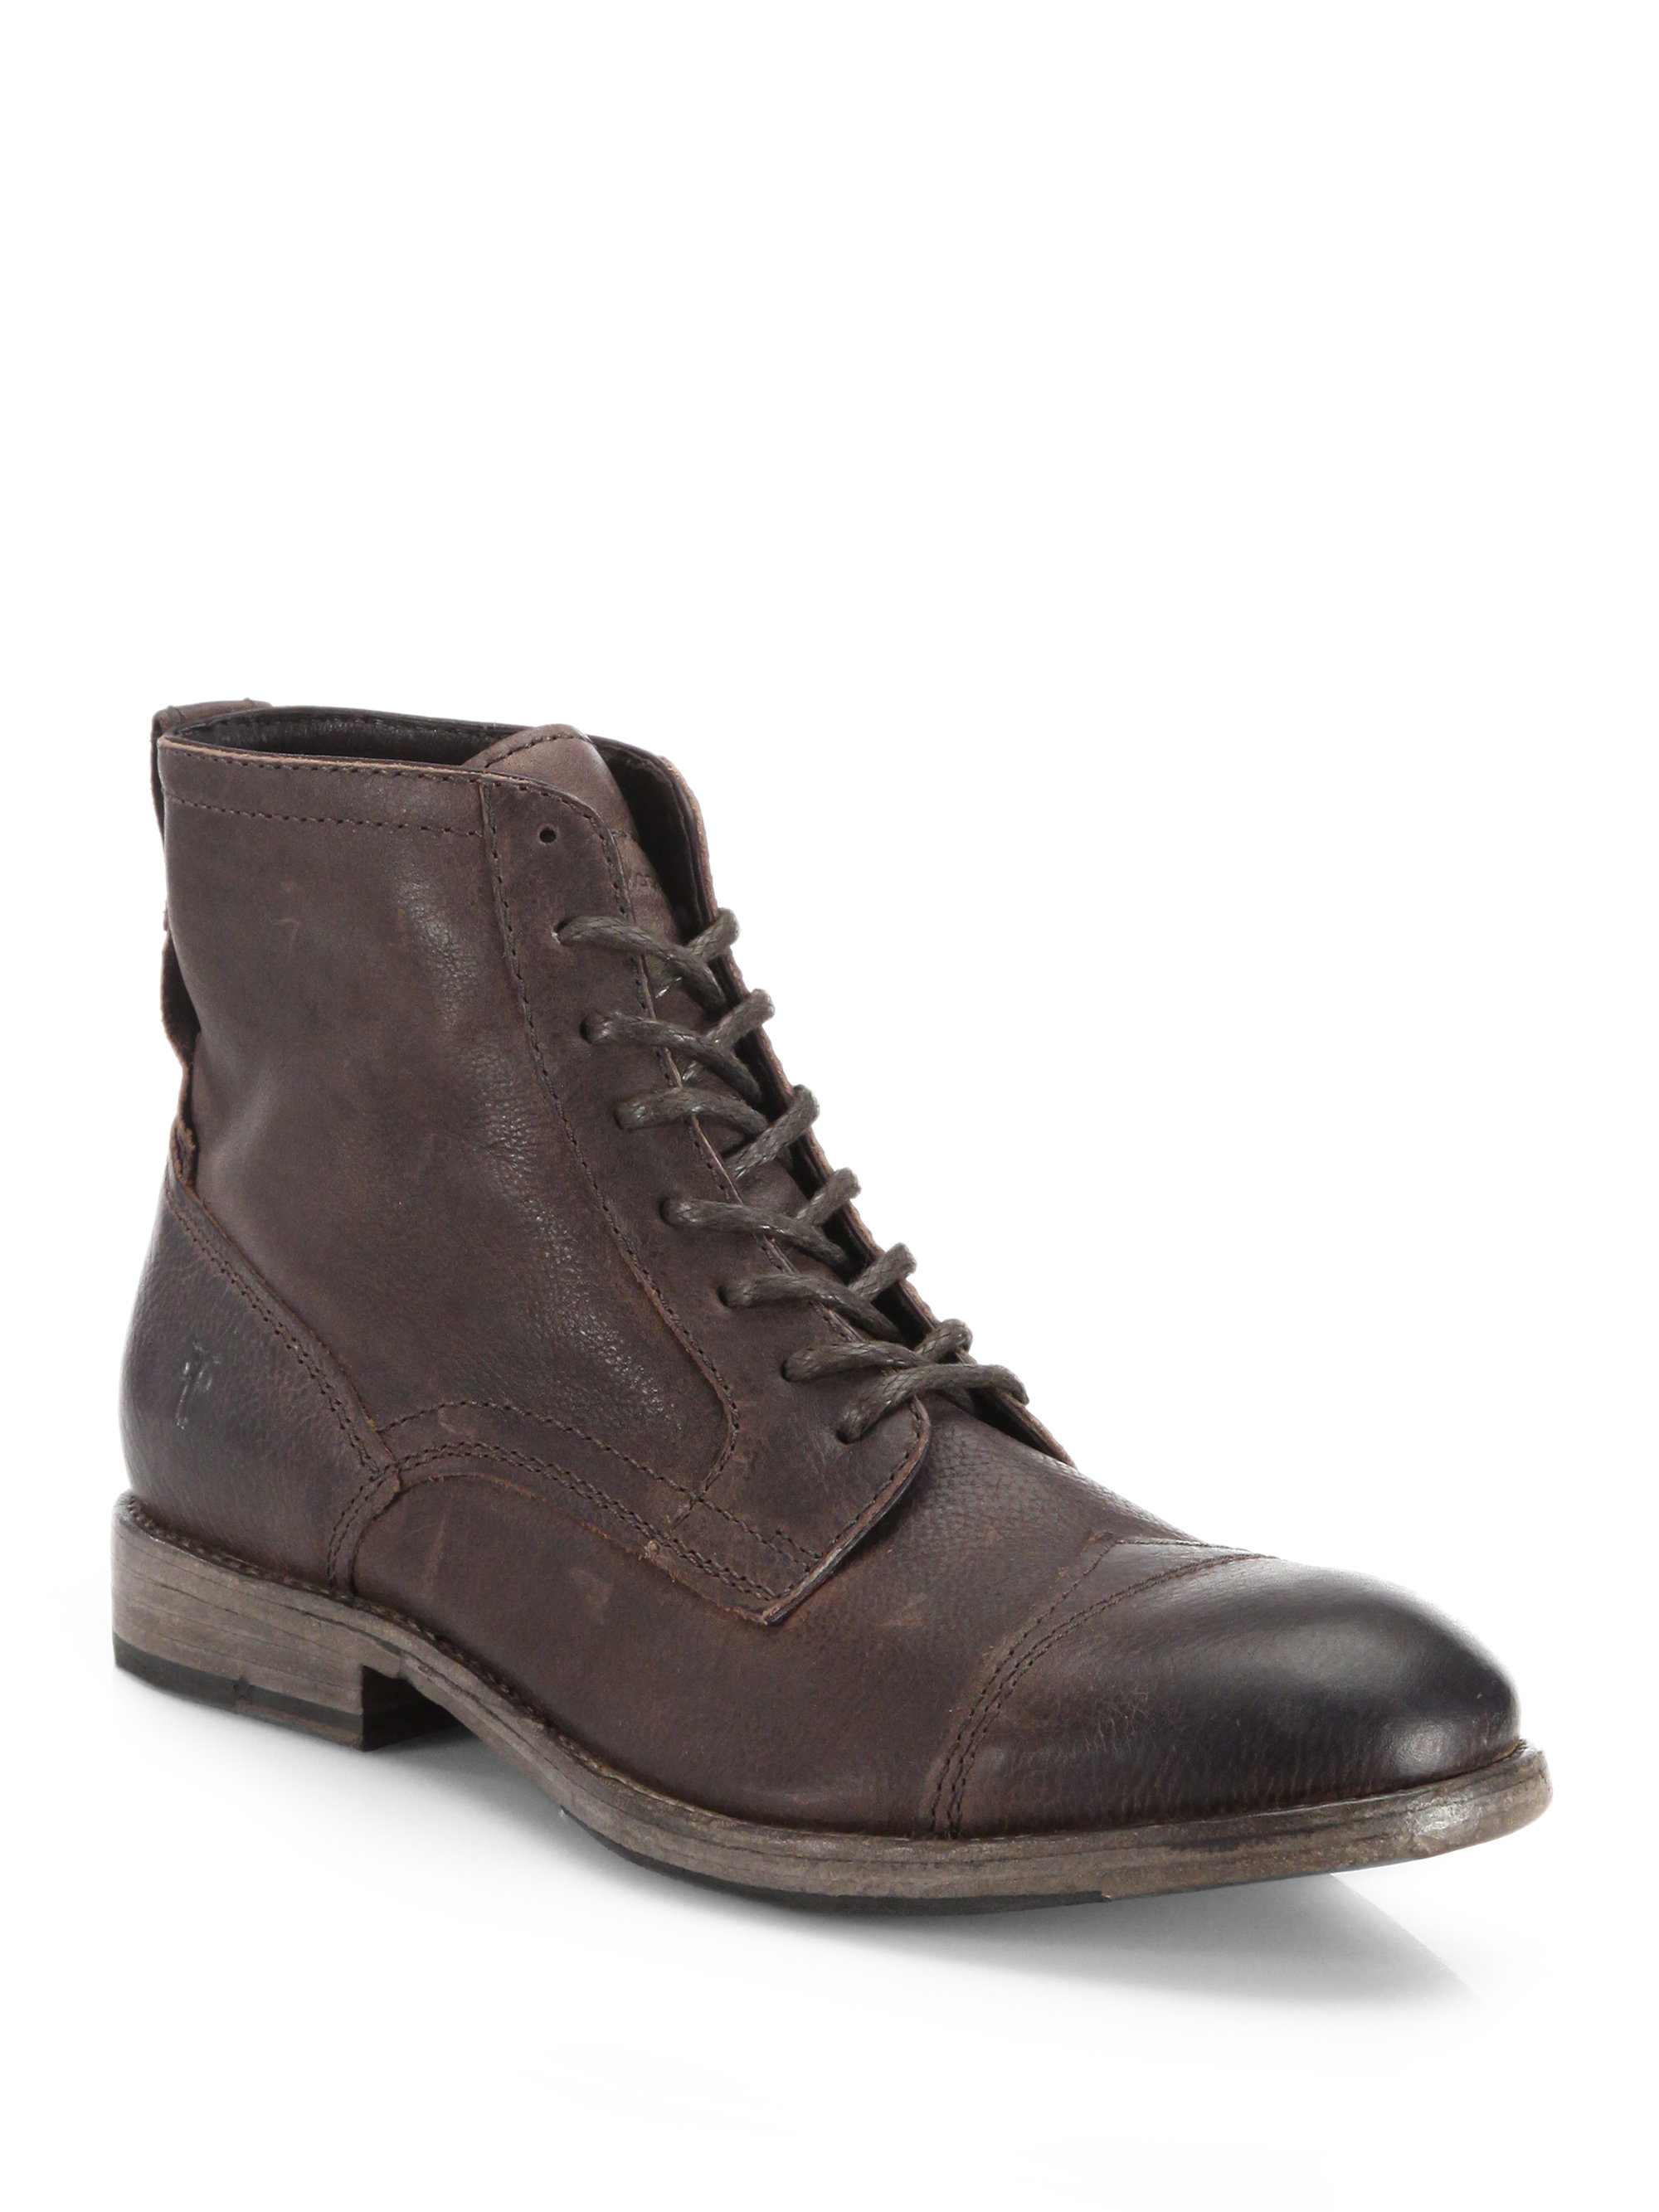 Frye Everett Leather Lace Up Boots In Brown For Men Lyst